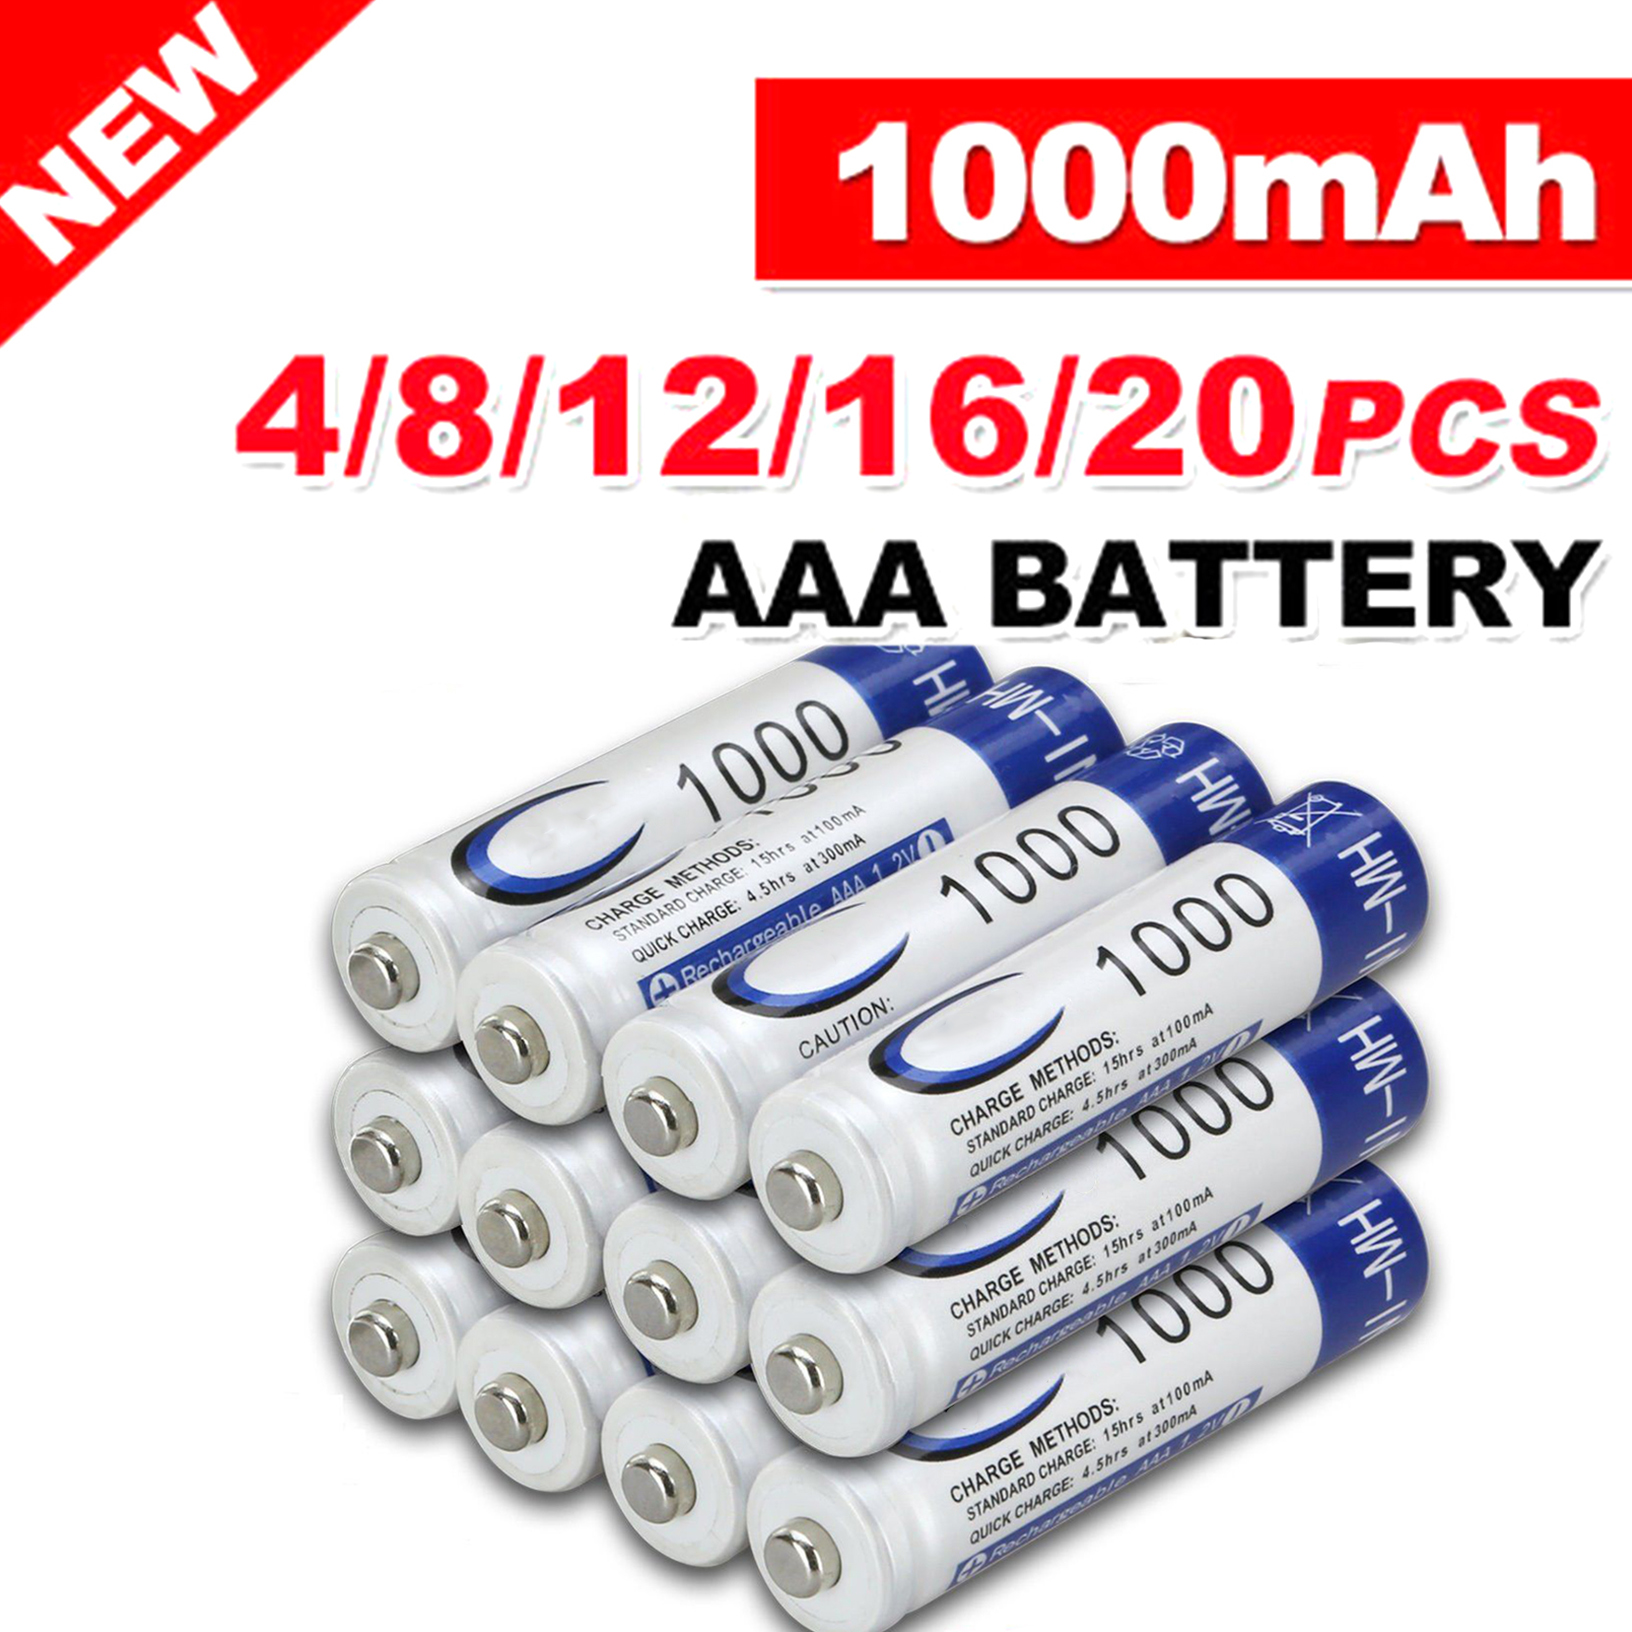 4-20pcs <font><b>AAA</b></font> 1.2V <font><b>1000mAh</b></font> Ni-MH <font><b>Rechargeable</b></font> Battery <font><b>Rechargeable</b></font> Batteries cells for toys image